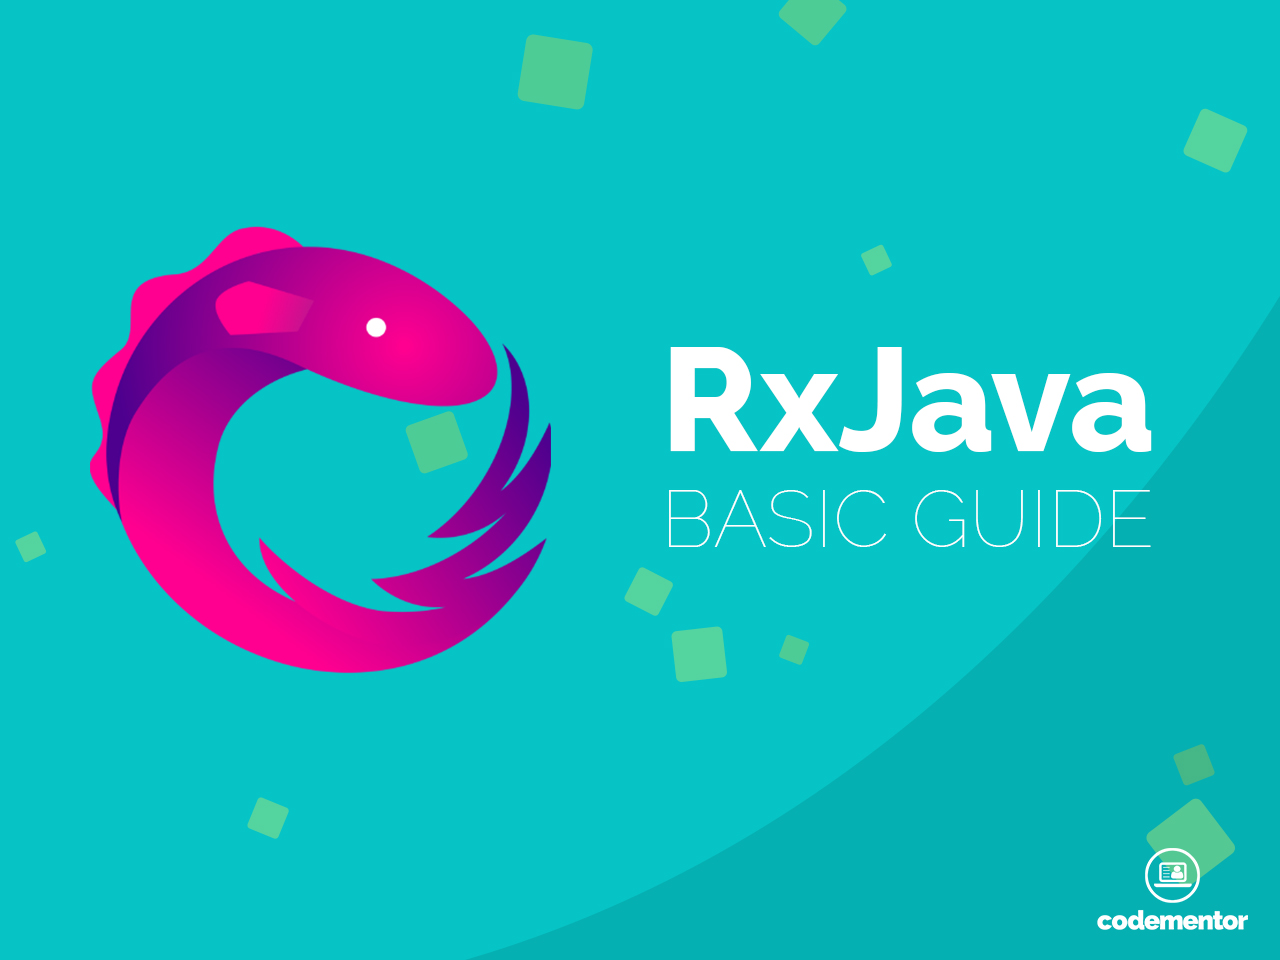 How to Use RxJava: Basic Guide